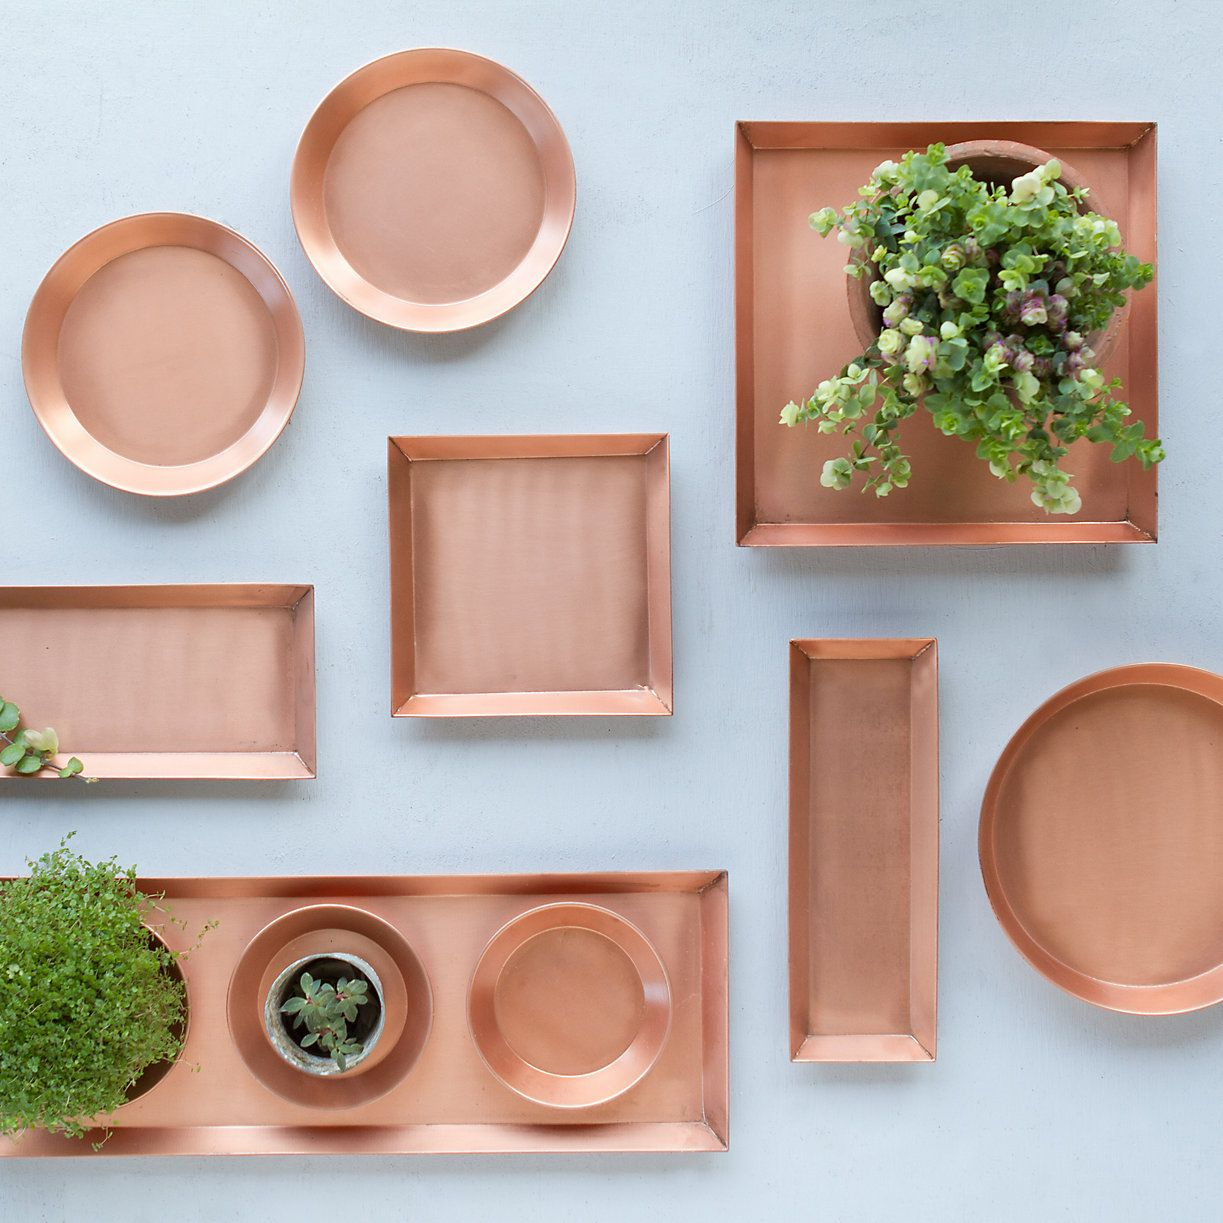 Terrain Home Decor: Polished Copper Tray, Square In House+Home HOME DÉCOR Room